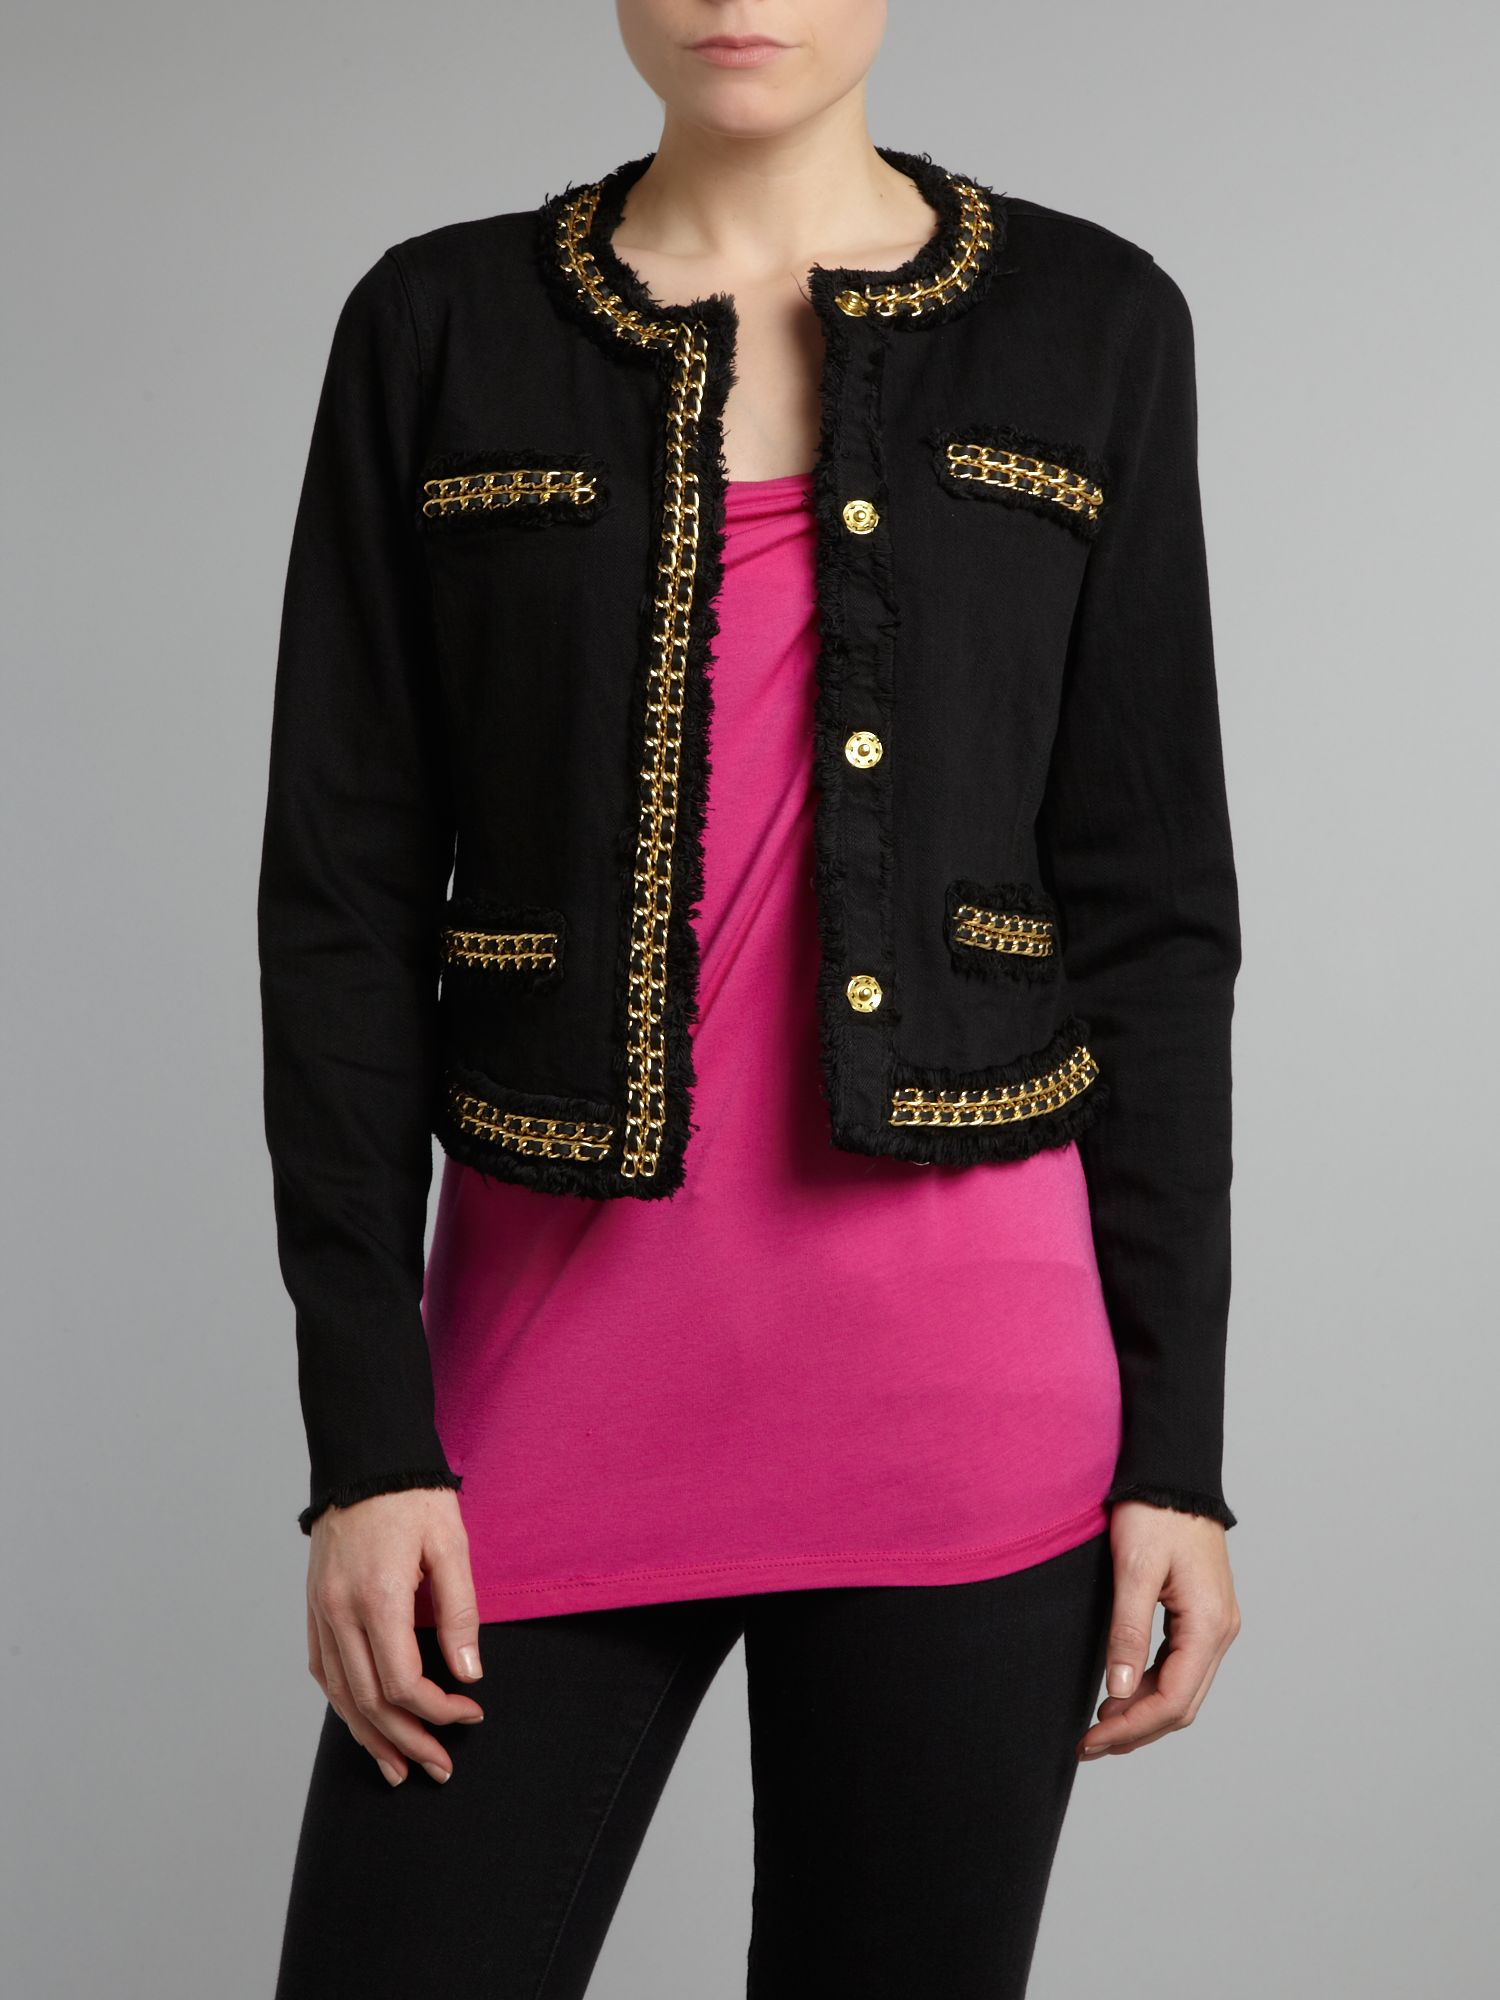 Long sleeved jacket with chain detail